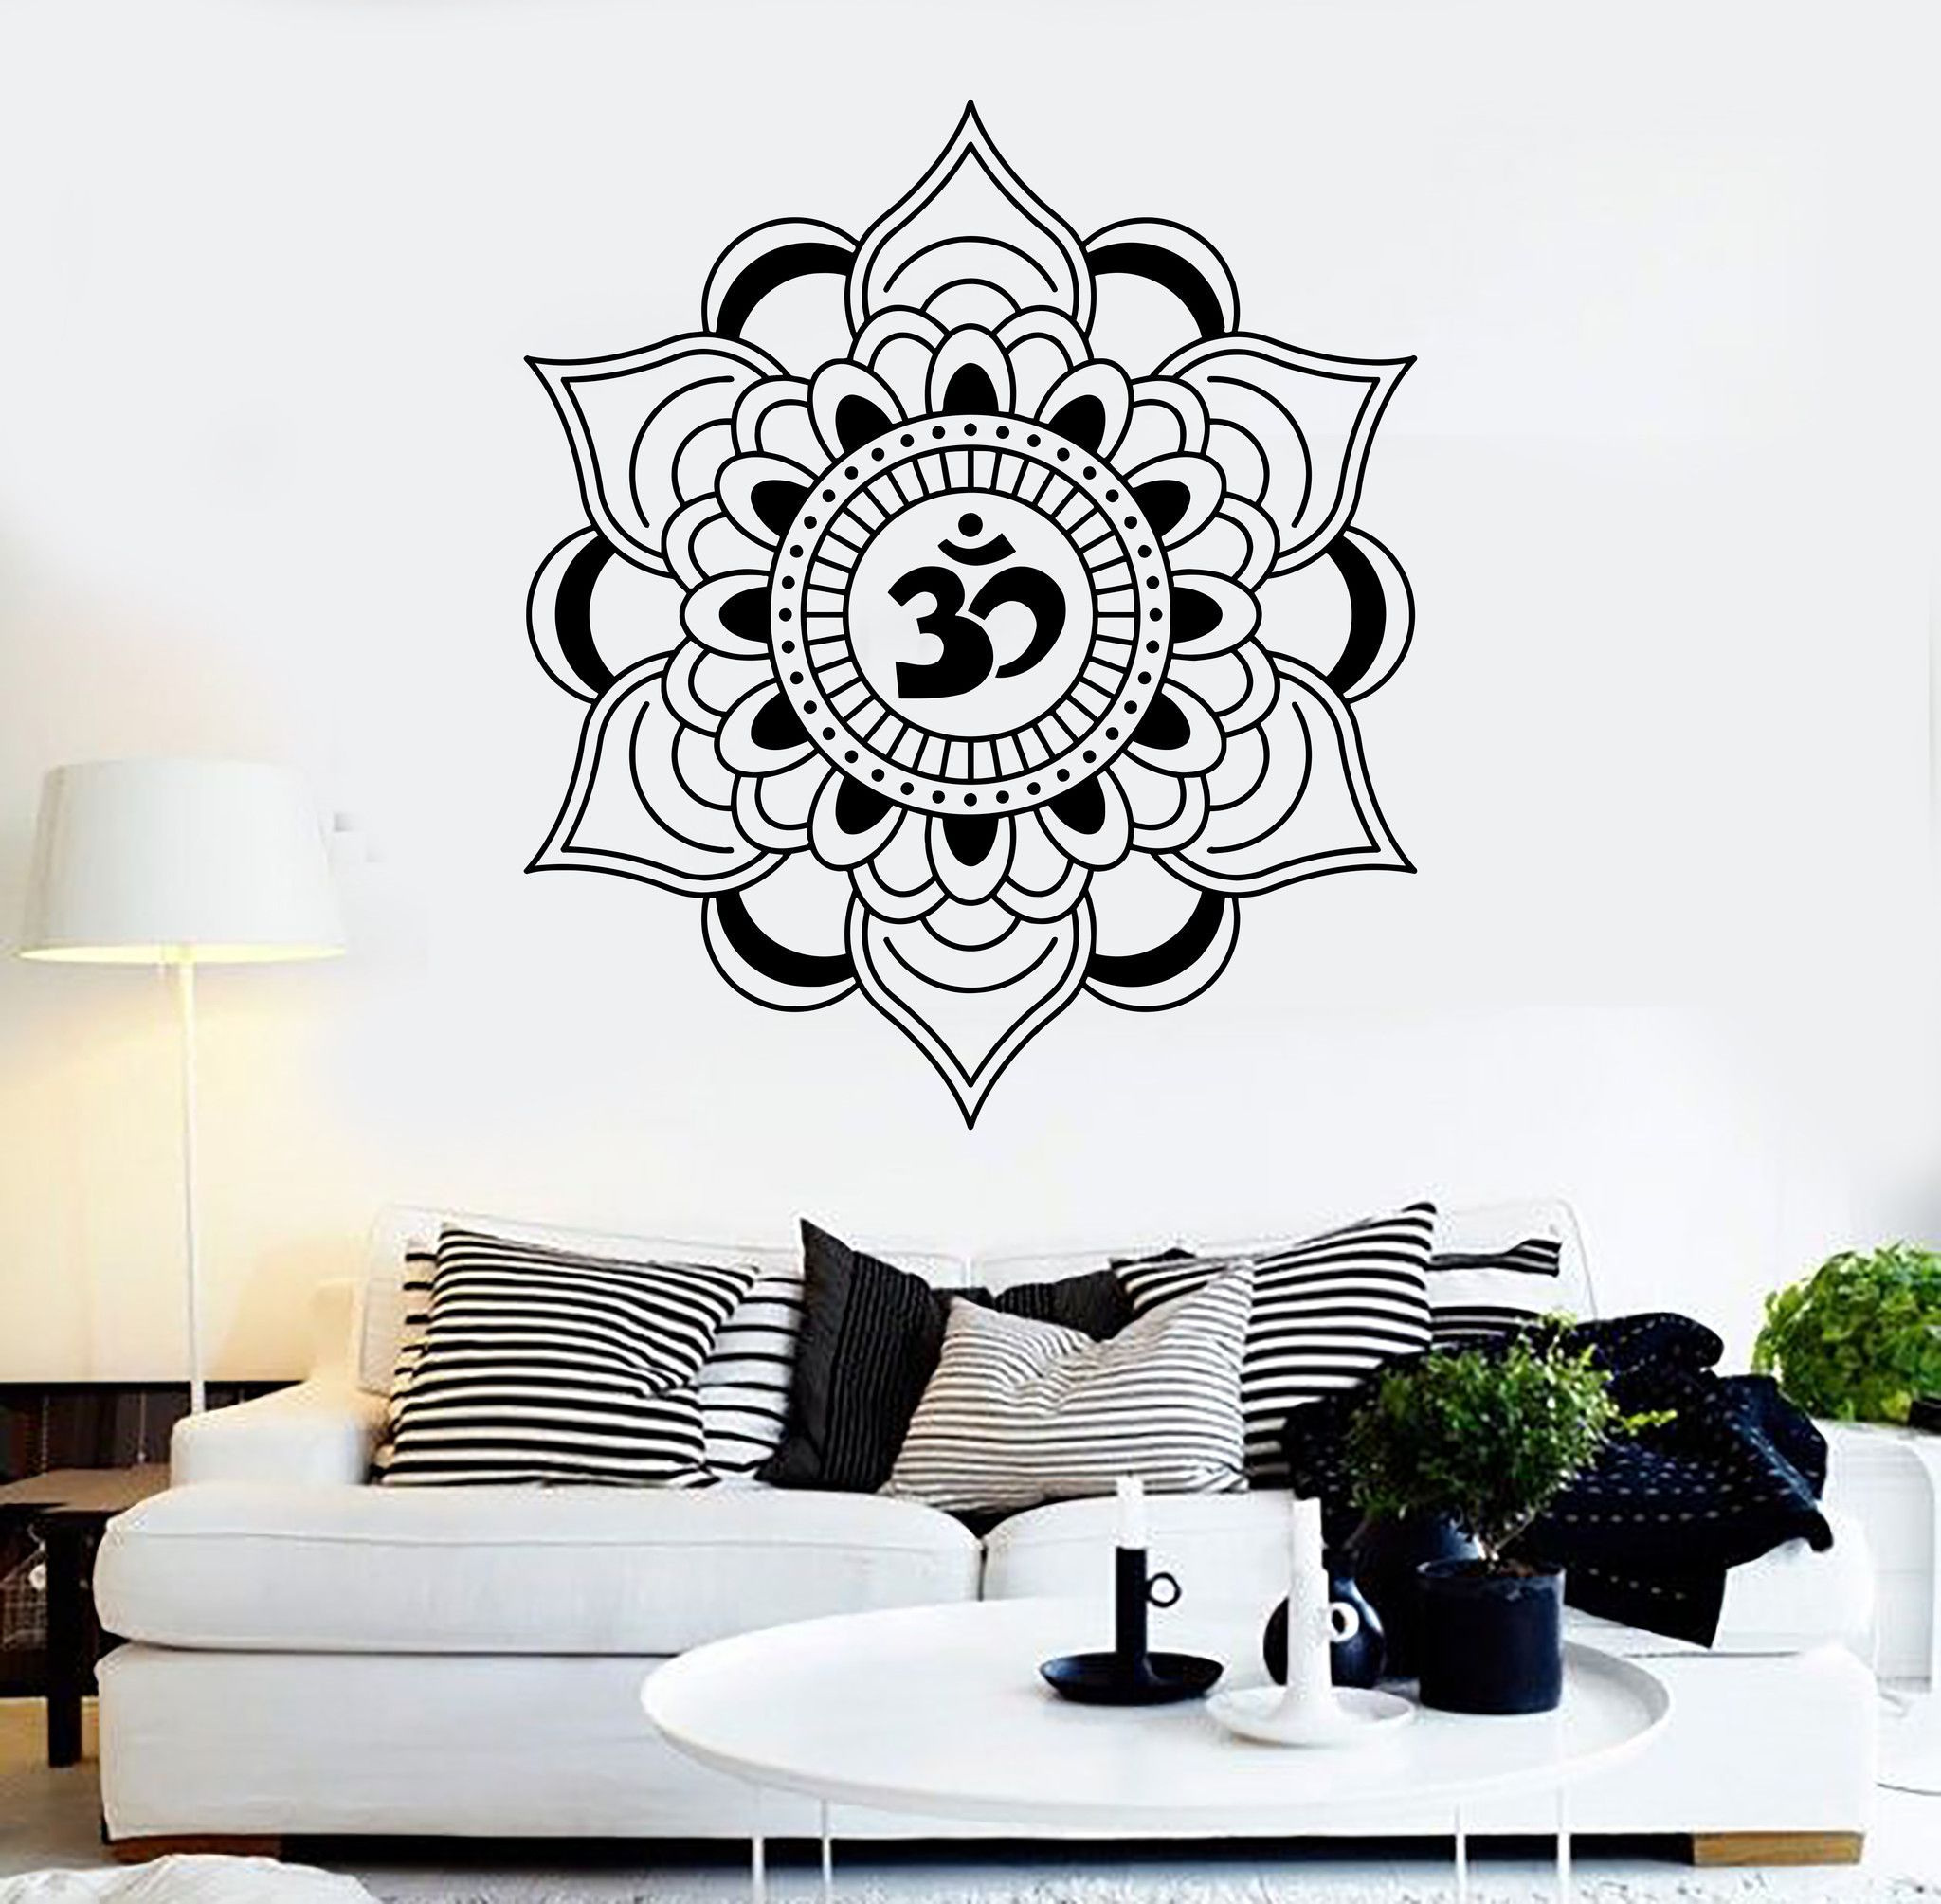 Vinyl Wall Decal Mandala Lotus Talisman Buddhism Hinduism Stickers - Wall stickers decalswall decal wikipedia